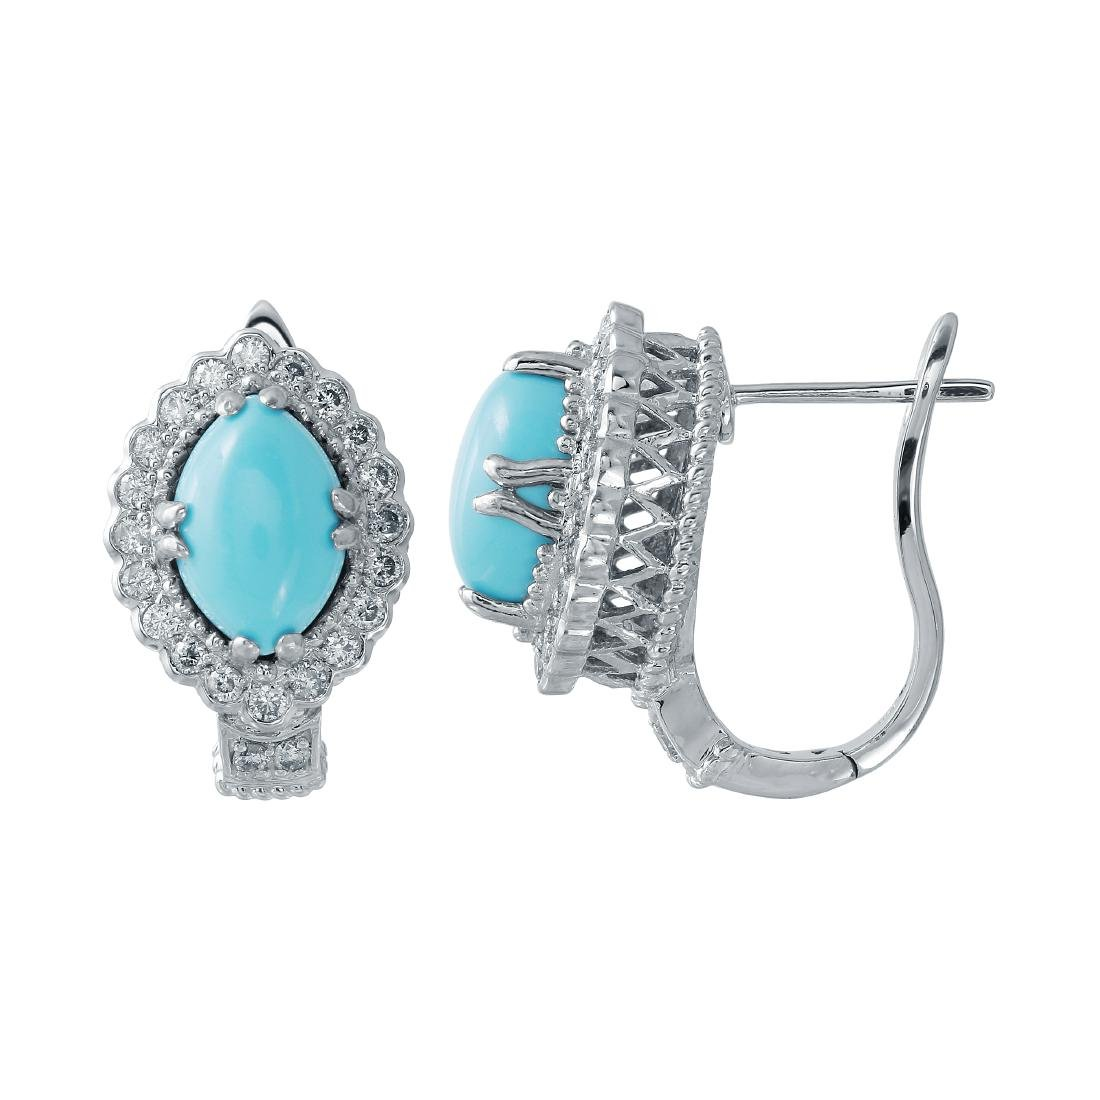 4.76 CTW Turquoise Huggy  Earring in 14K White Gold